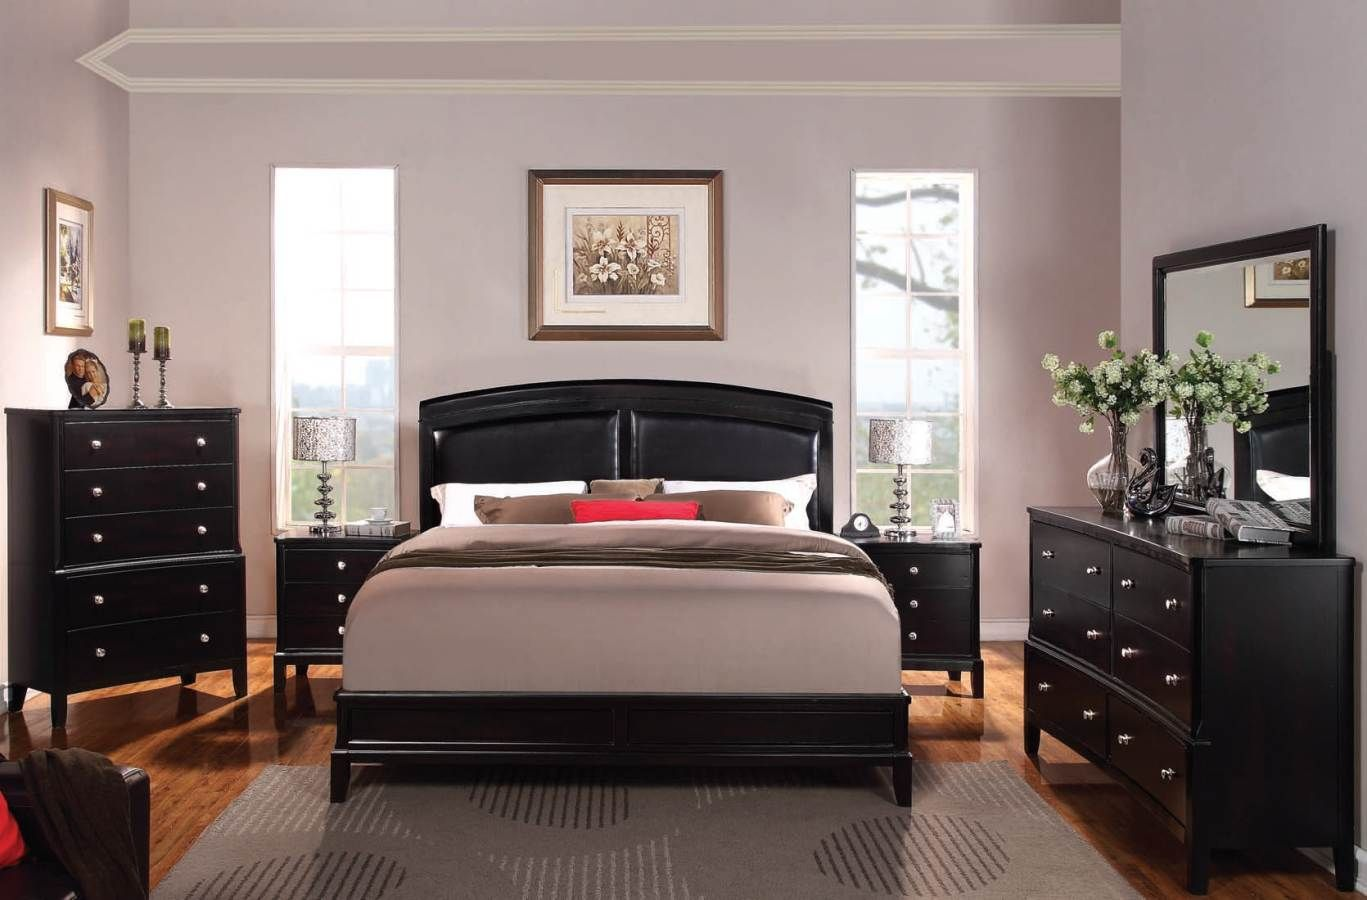 Bedroom Sets Espresso abram contemporary espresso master bedroom set 21394-bd | bedrooms